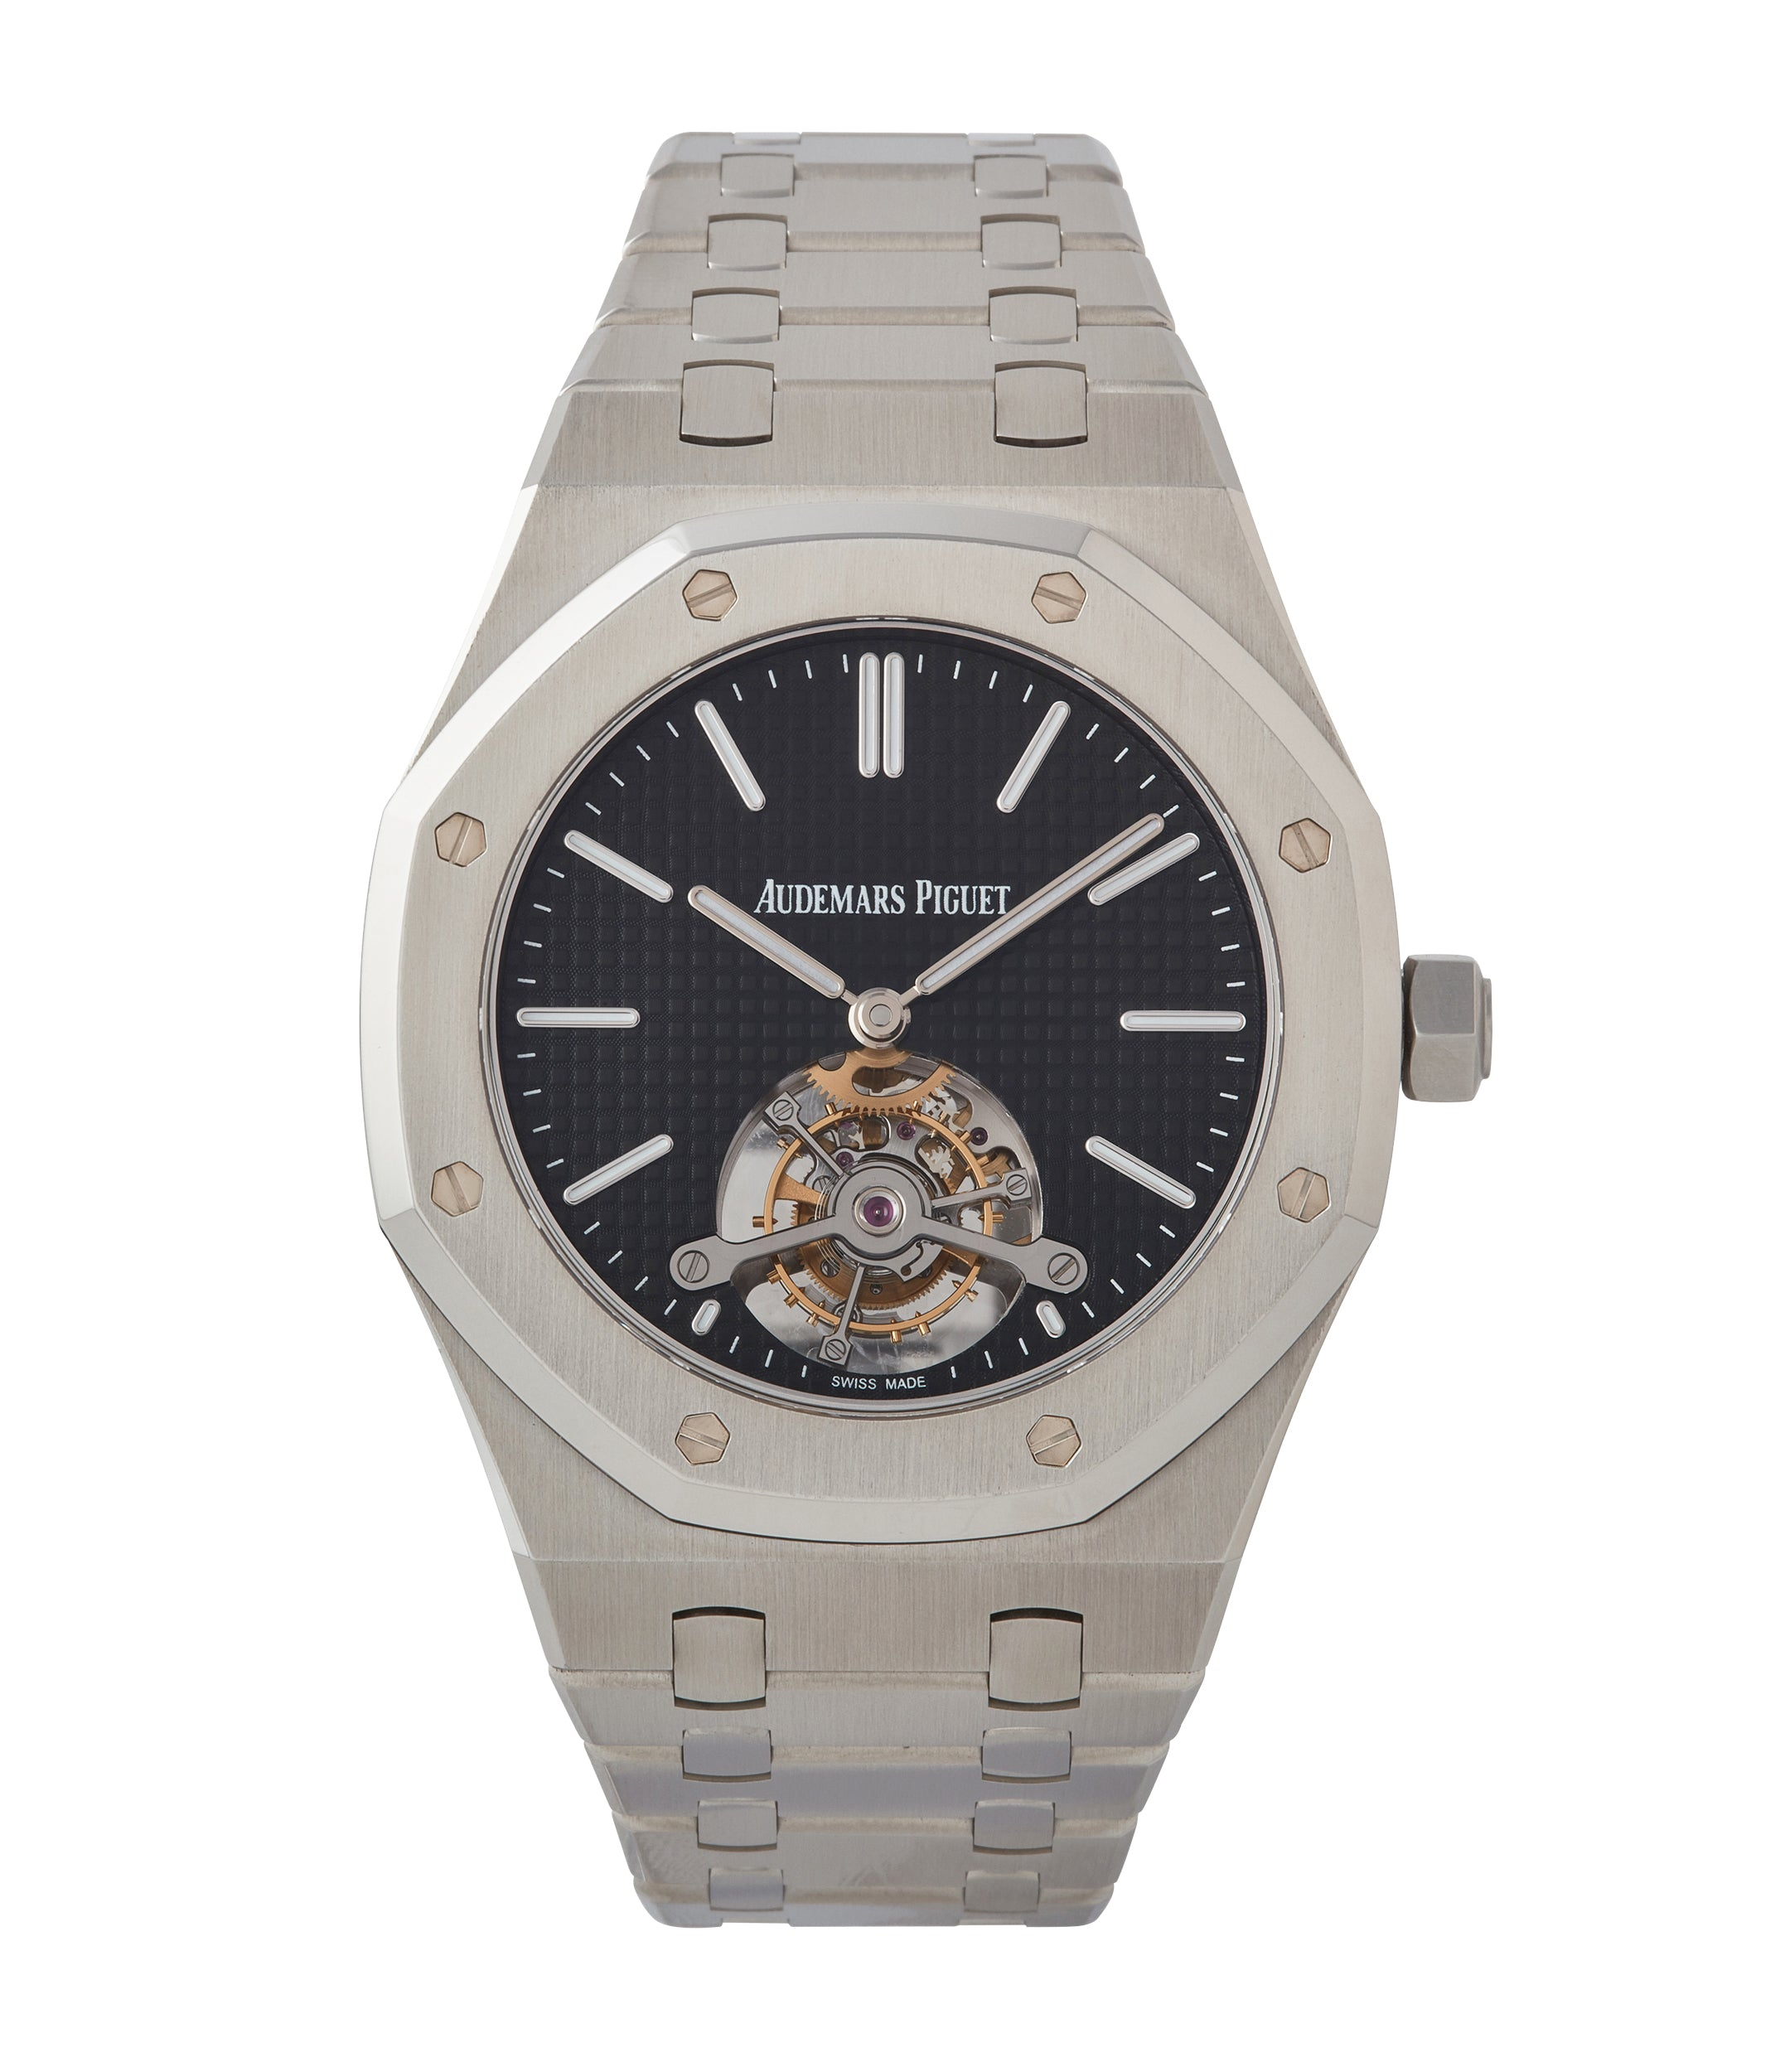 buy Audemars Piguet Royal Oak Tourbillon extra-slim Special Edition Japanese steel pre-owned watch for sale online at A Collected Man London UK specialist of rare watches